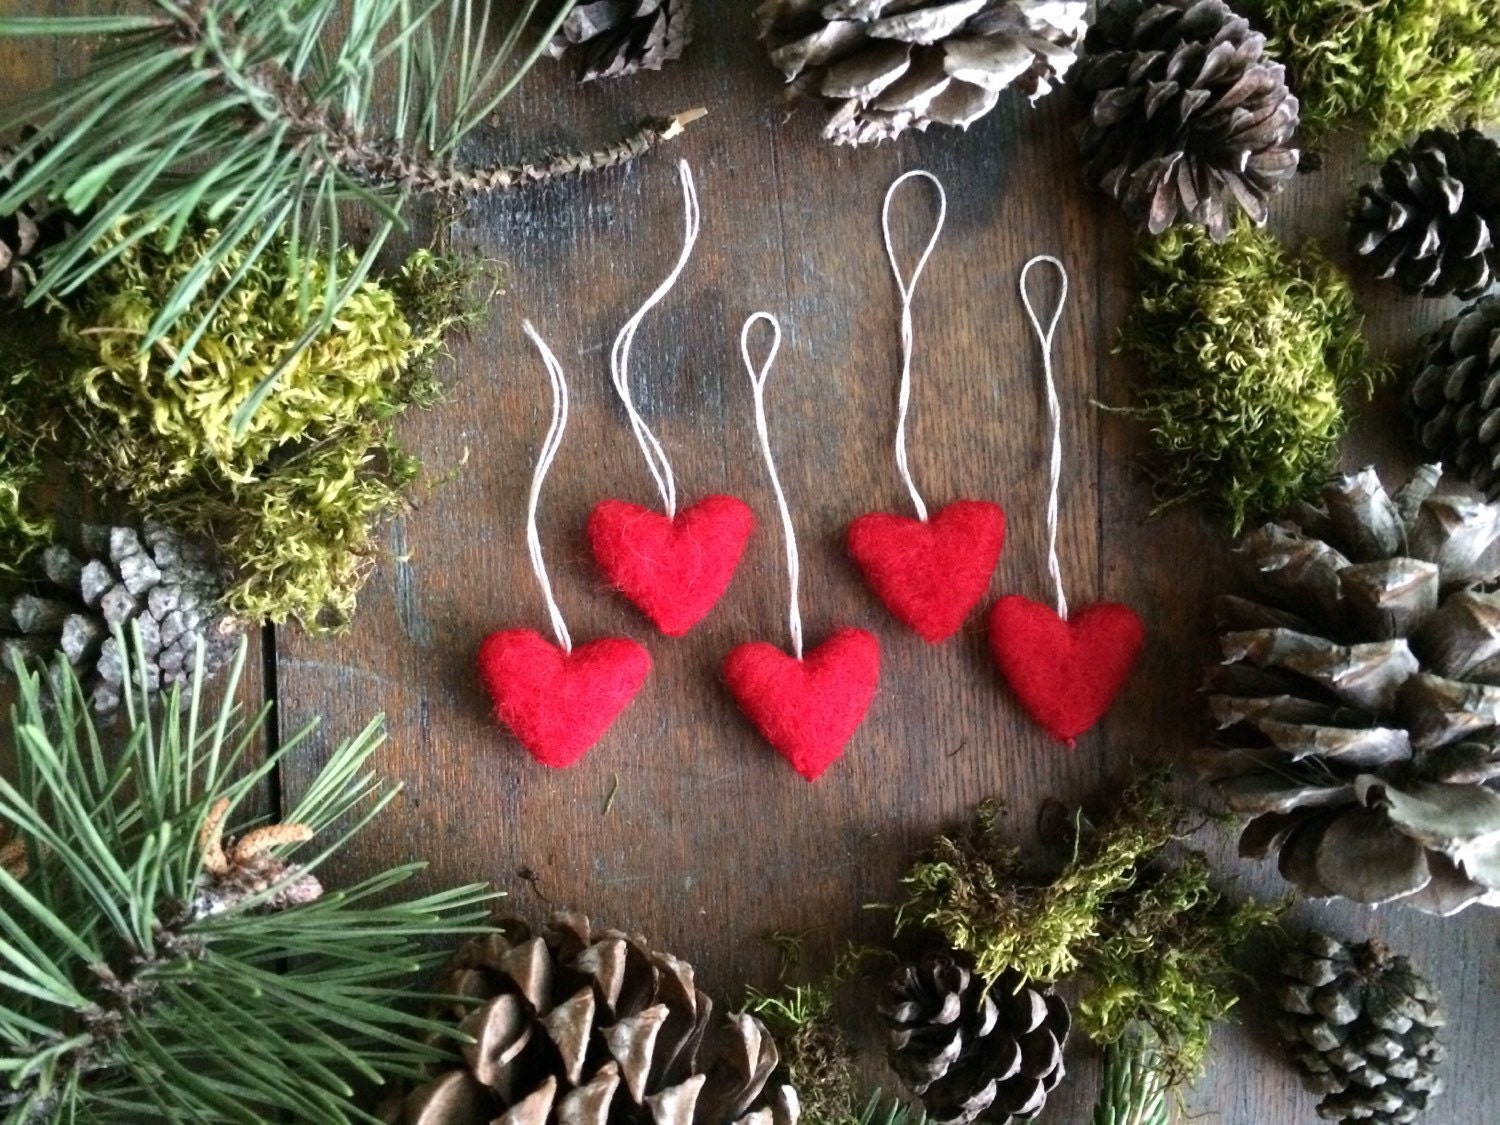 Felted Wool Heart Ornaments Set Of 5 Red For Christmas Tree